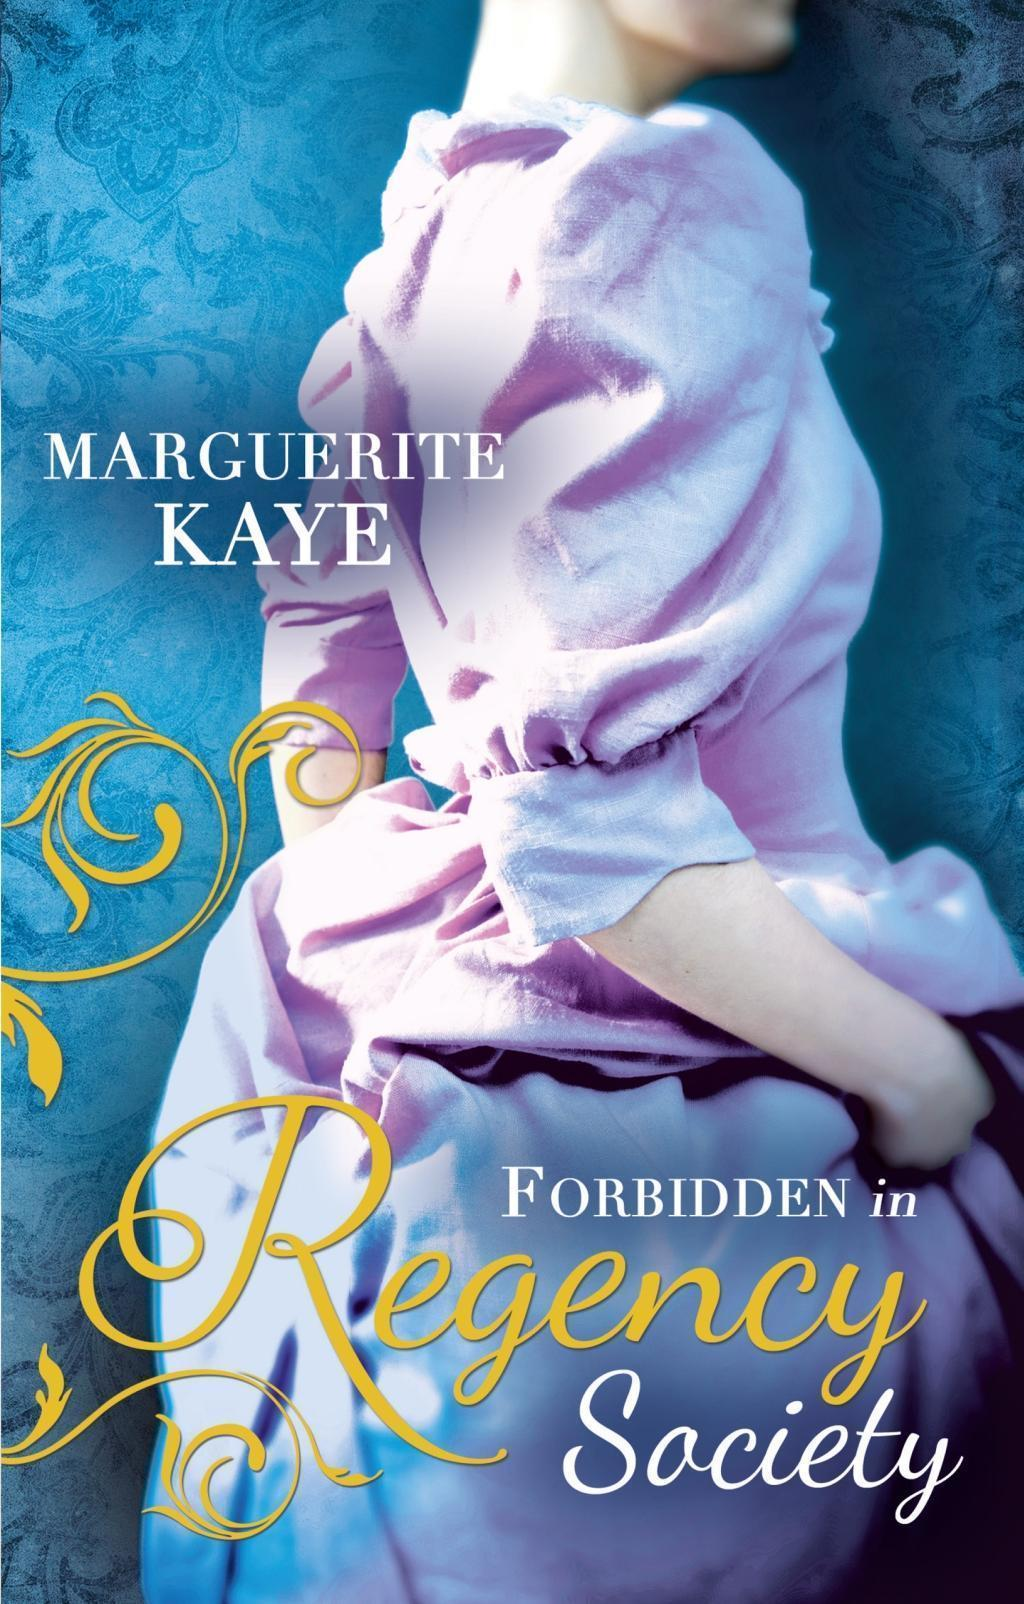 Forbidden in Regency Society: The Governess and the Sheikh / Rake with a Frozen Heart (Mills & Boon M&B) (The Armstrong Sisters, Book 3)